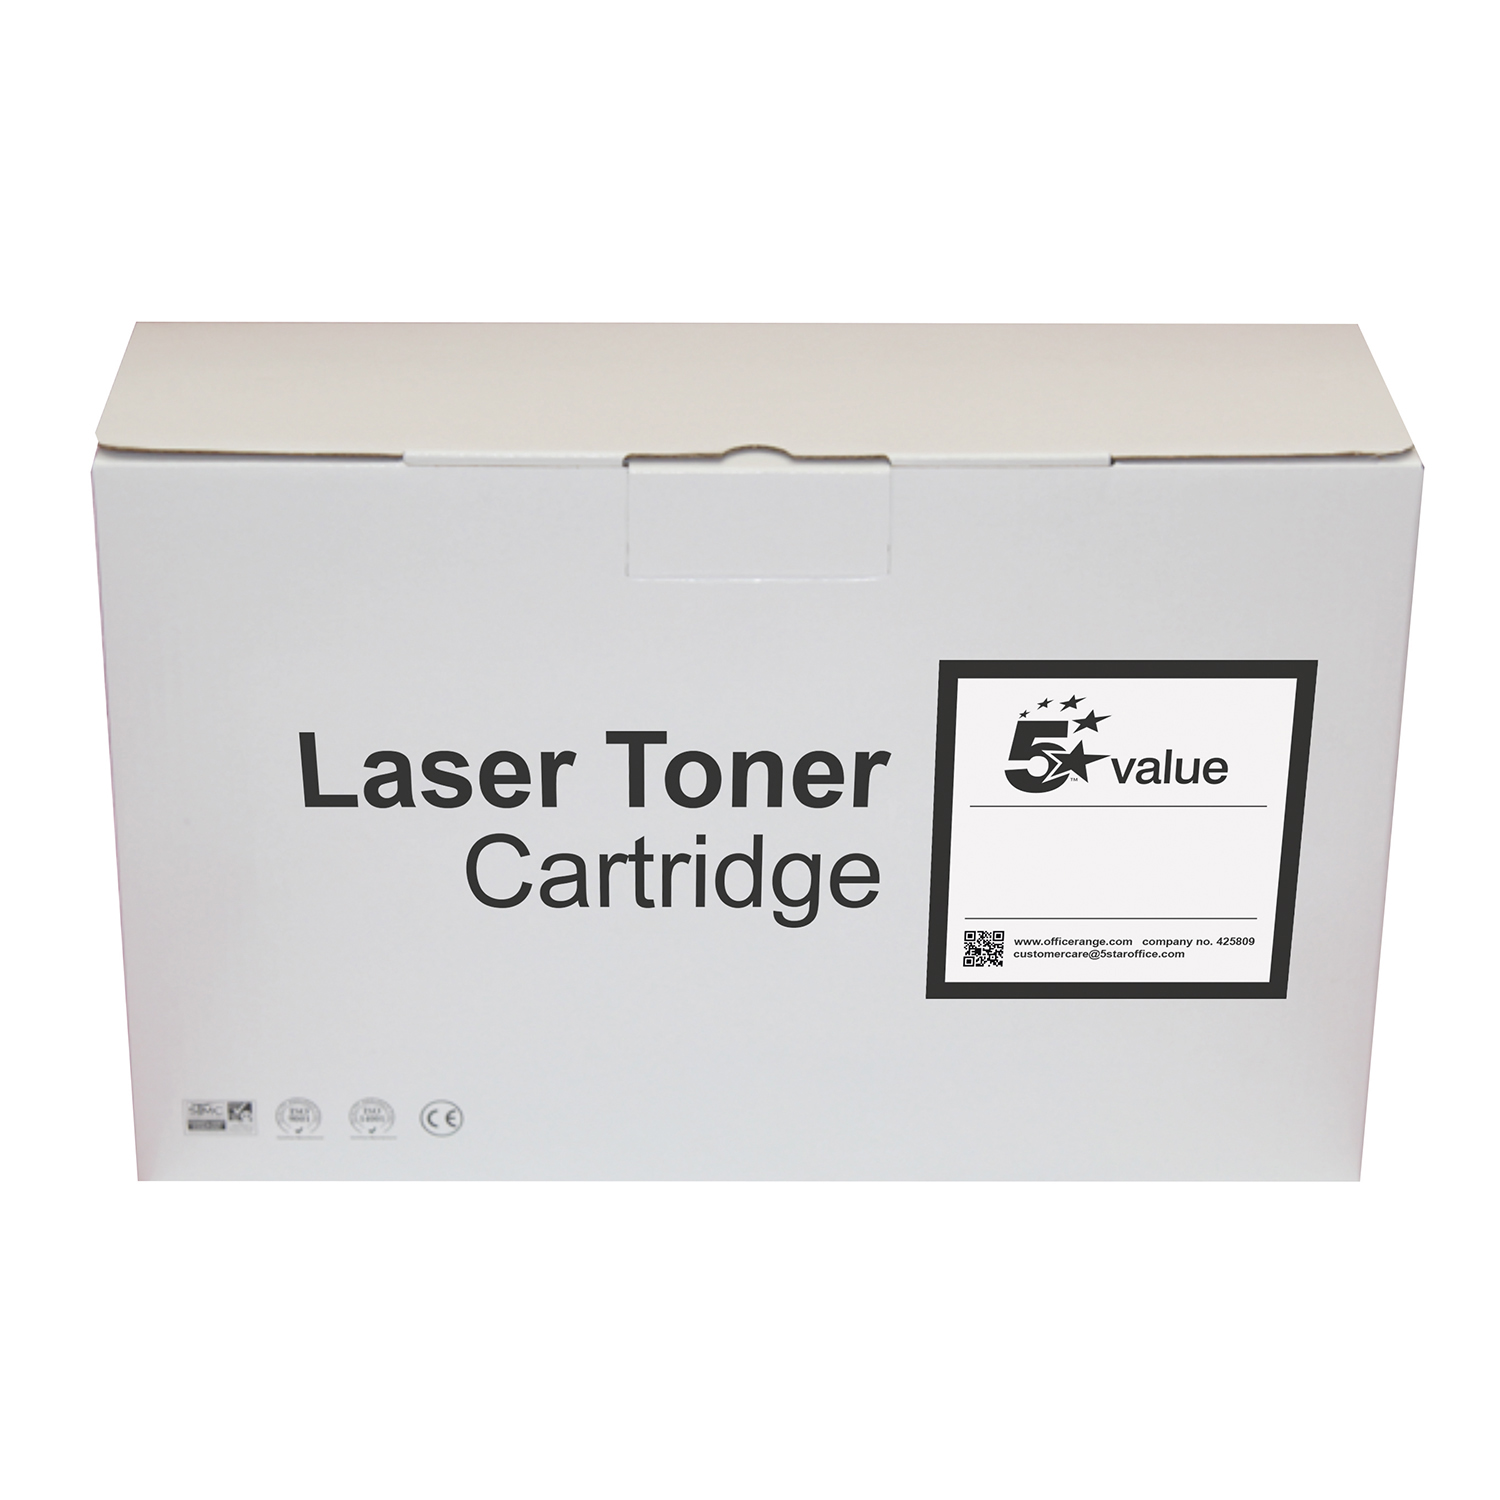 5 Star Value Remanufactured High Capacity Toner Cartridge Cyan [Brother TN423C Alternative]